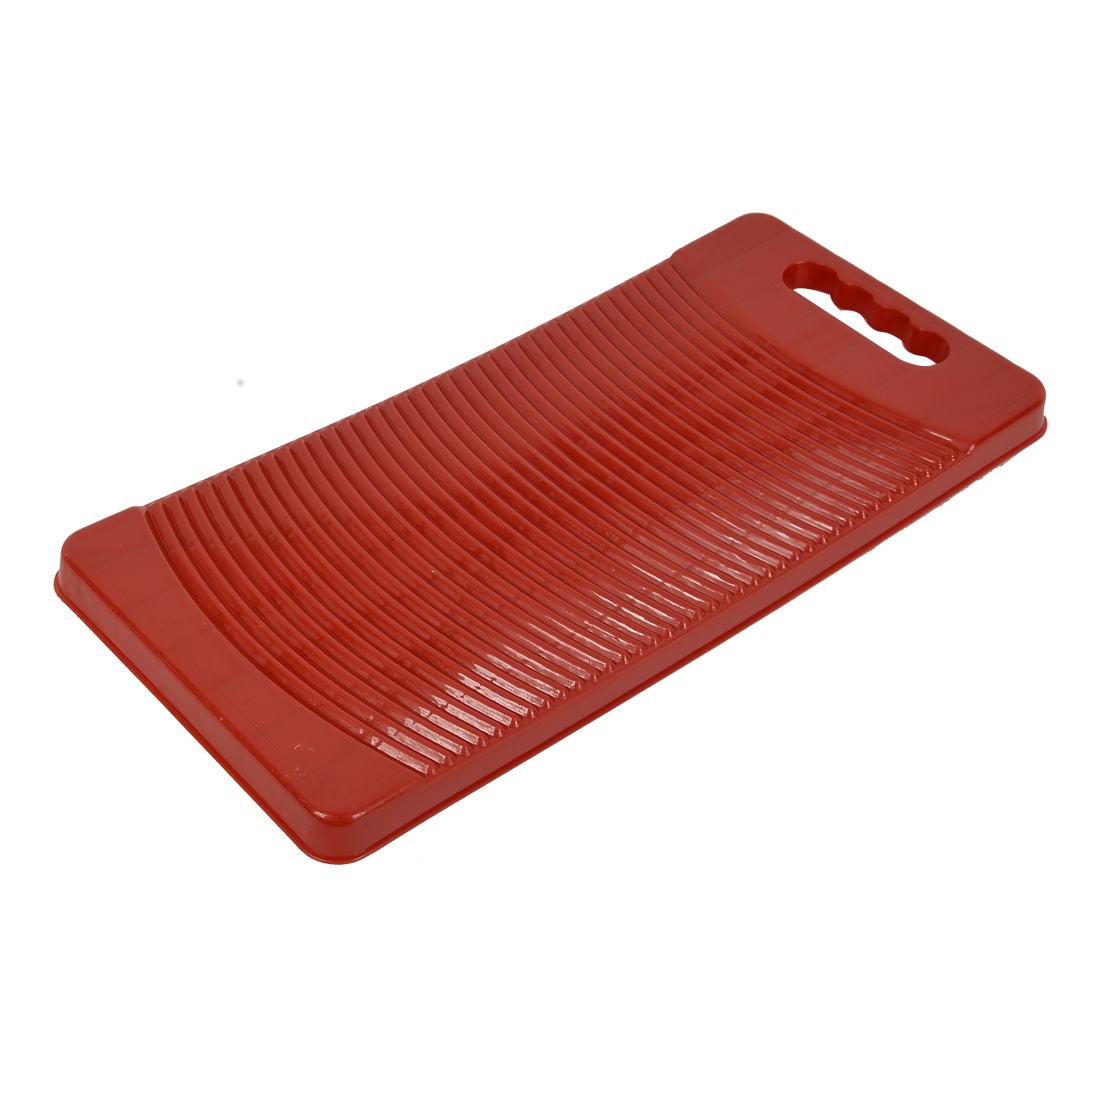 Home Plastic Rectangle Washboard Clothes Washing Board Red 49cm Length